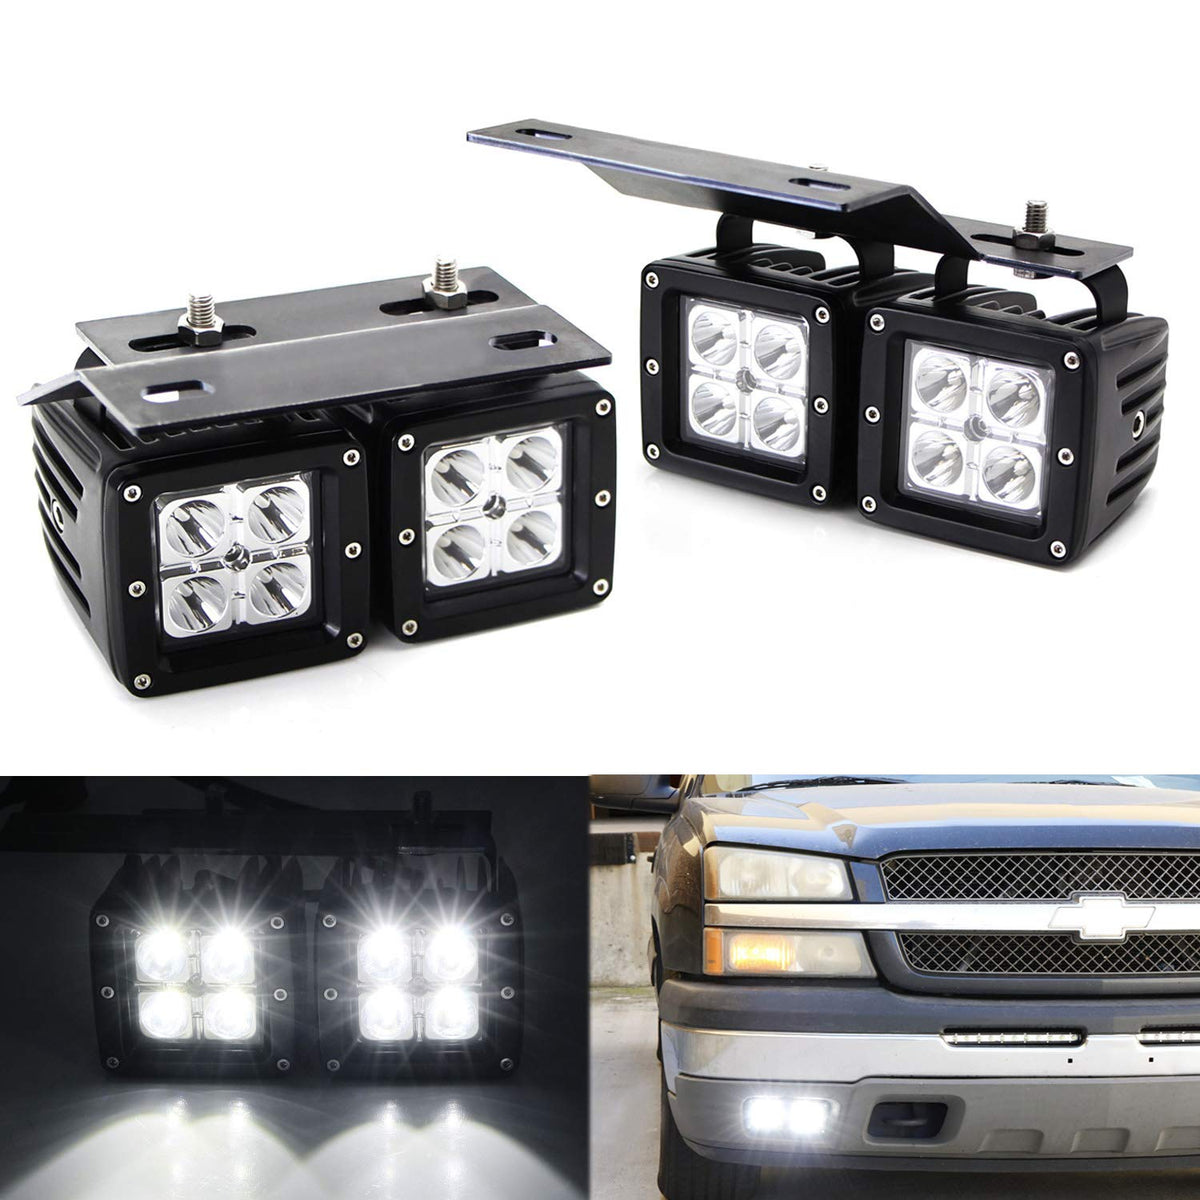 Dual LED Pod Fog Lamp Kit For 2002-06 Chevy Avalanche, 03-07 Silverado  Chevy Headlight Wiring on